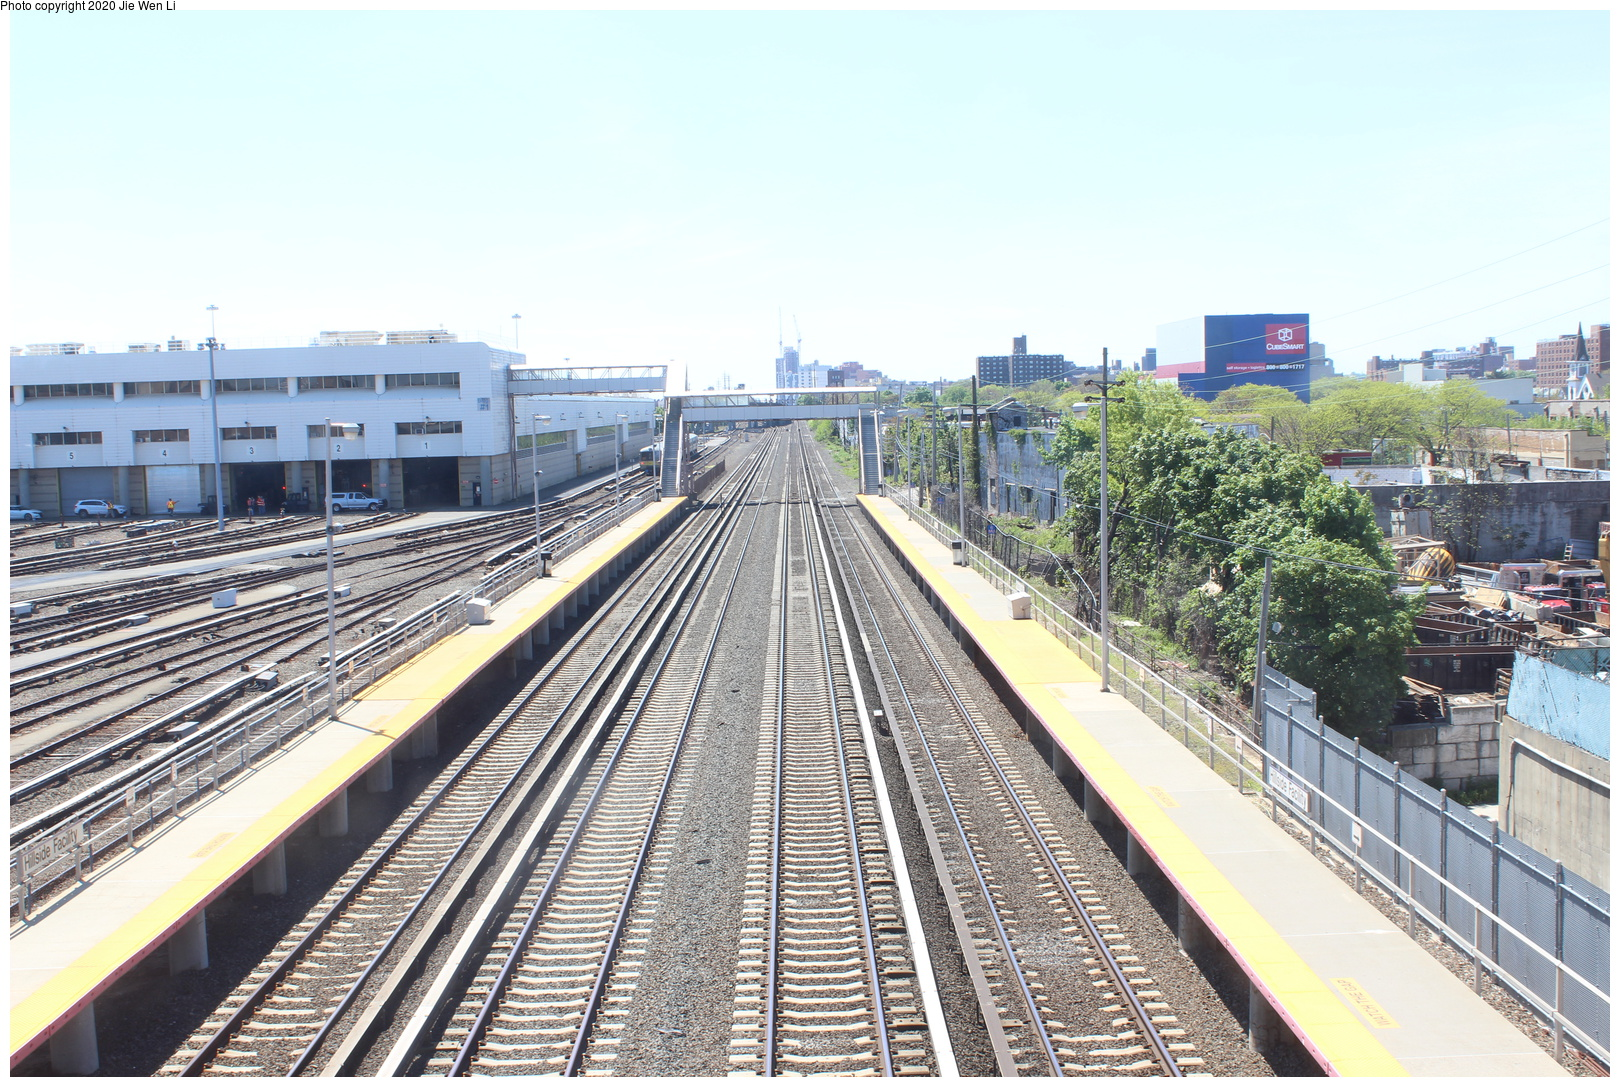 (213k, 1026x1044)<br><b>Country:</b> United States<br><b>City:</b> New York<br><b>System:</b> New York City Transit<br><b>Location:</b> East 180th Street Yard<br><b>Car:</b> Low-V 4932/5324 <br><b>Photo by:</b> Joel Shanus<br><b>Viewed (this week/total):</b> 1 / 850